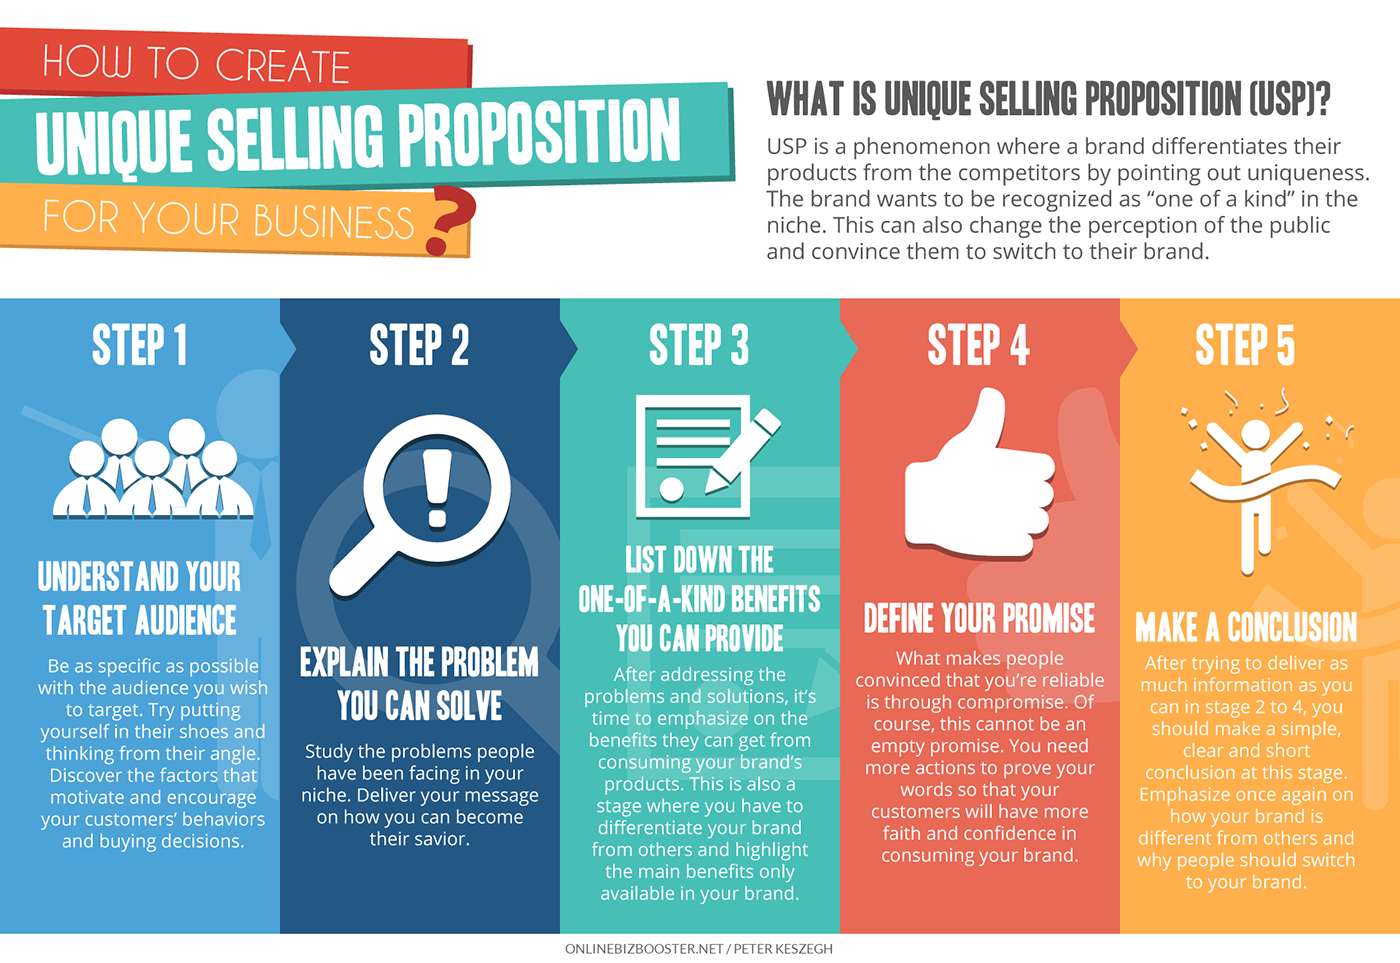 What is Unique Selling Proposition (USP)?